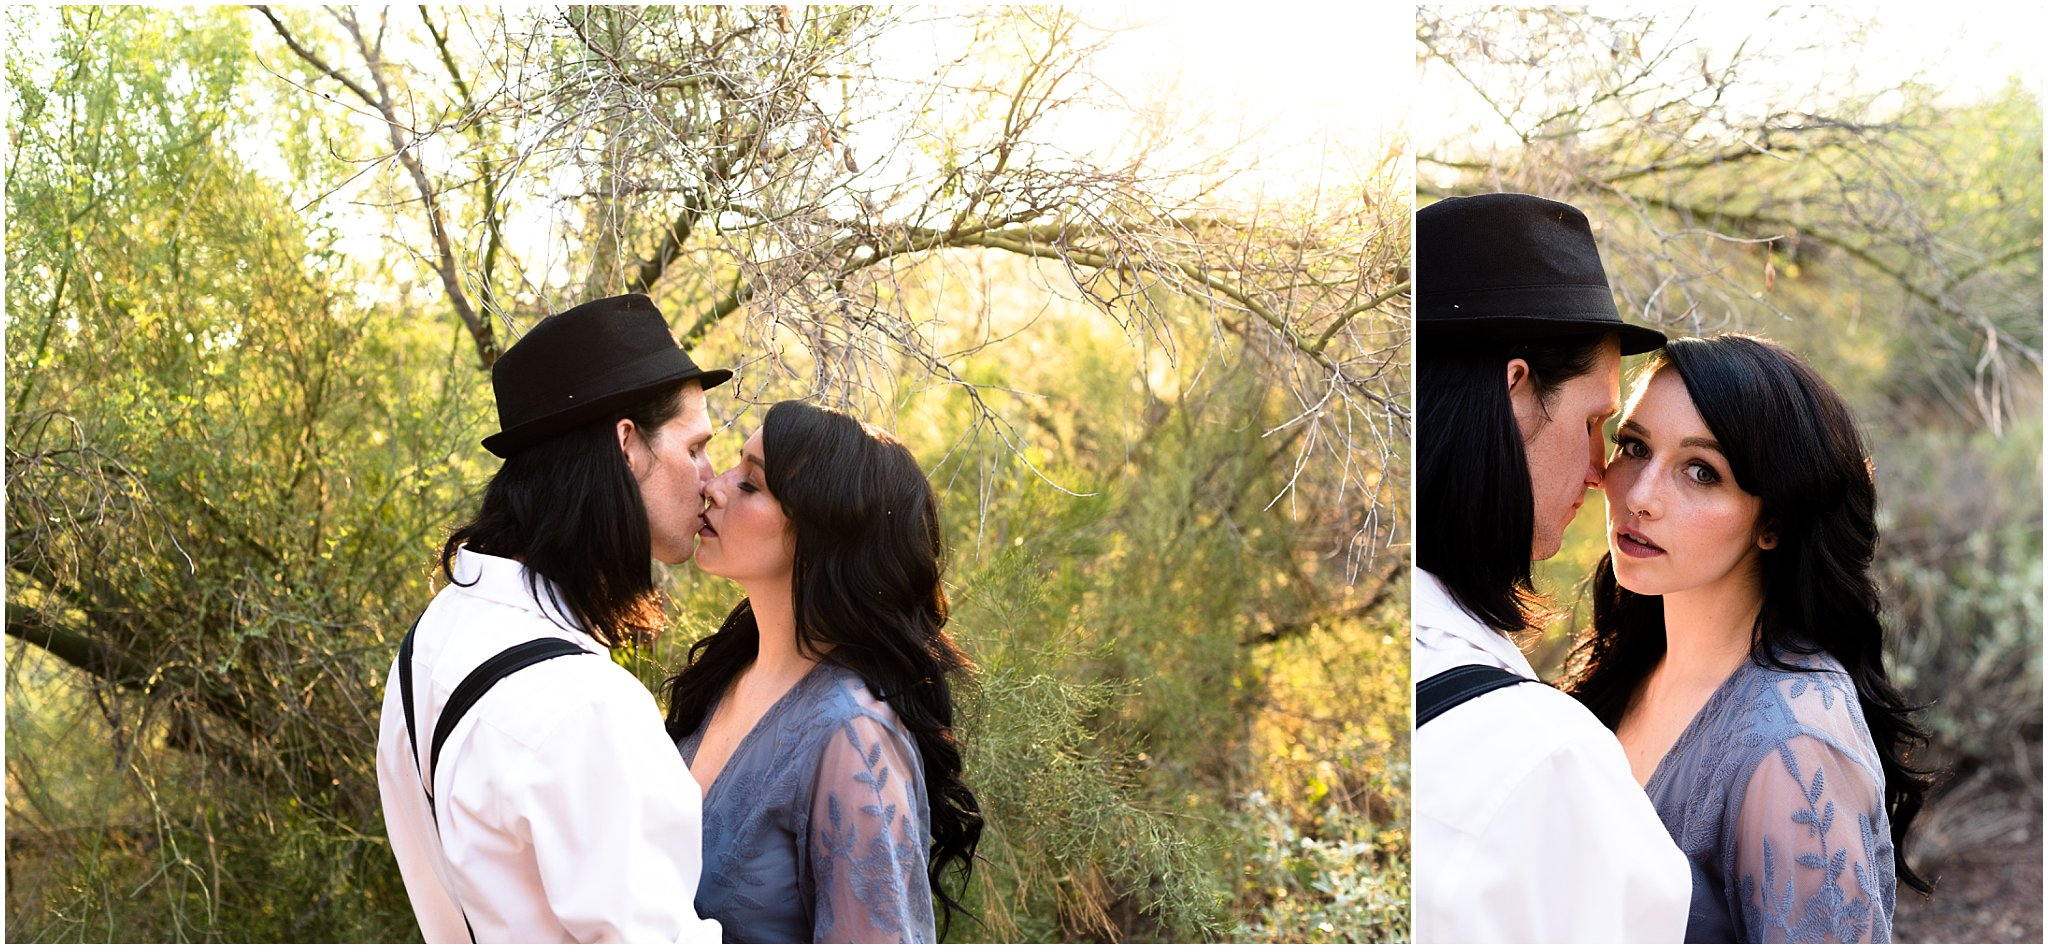 We also had an engaged couple modeling another boho look for us. Let me tell you something. Skyler and Adam had crazy chemistry. You could tell Adam was just so in love with Skyler and how beautiful she was in her dusty blue romper and beautifully styled hair and makeup.